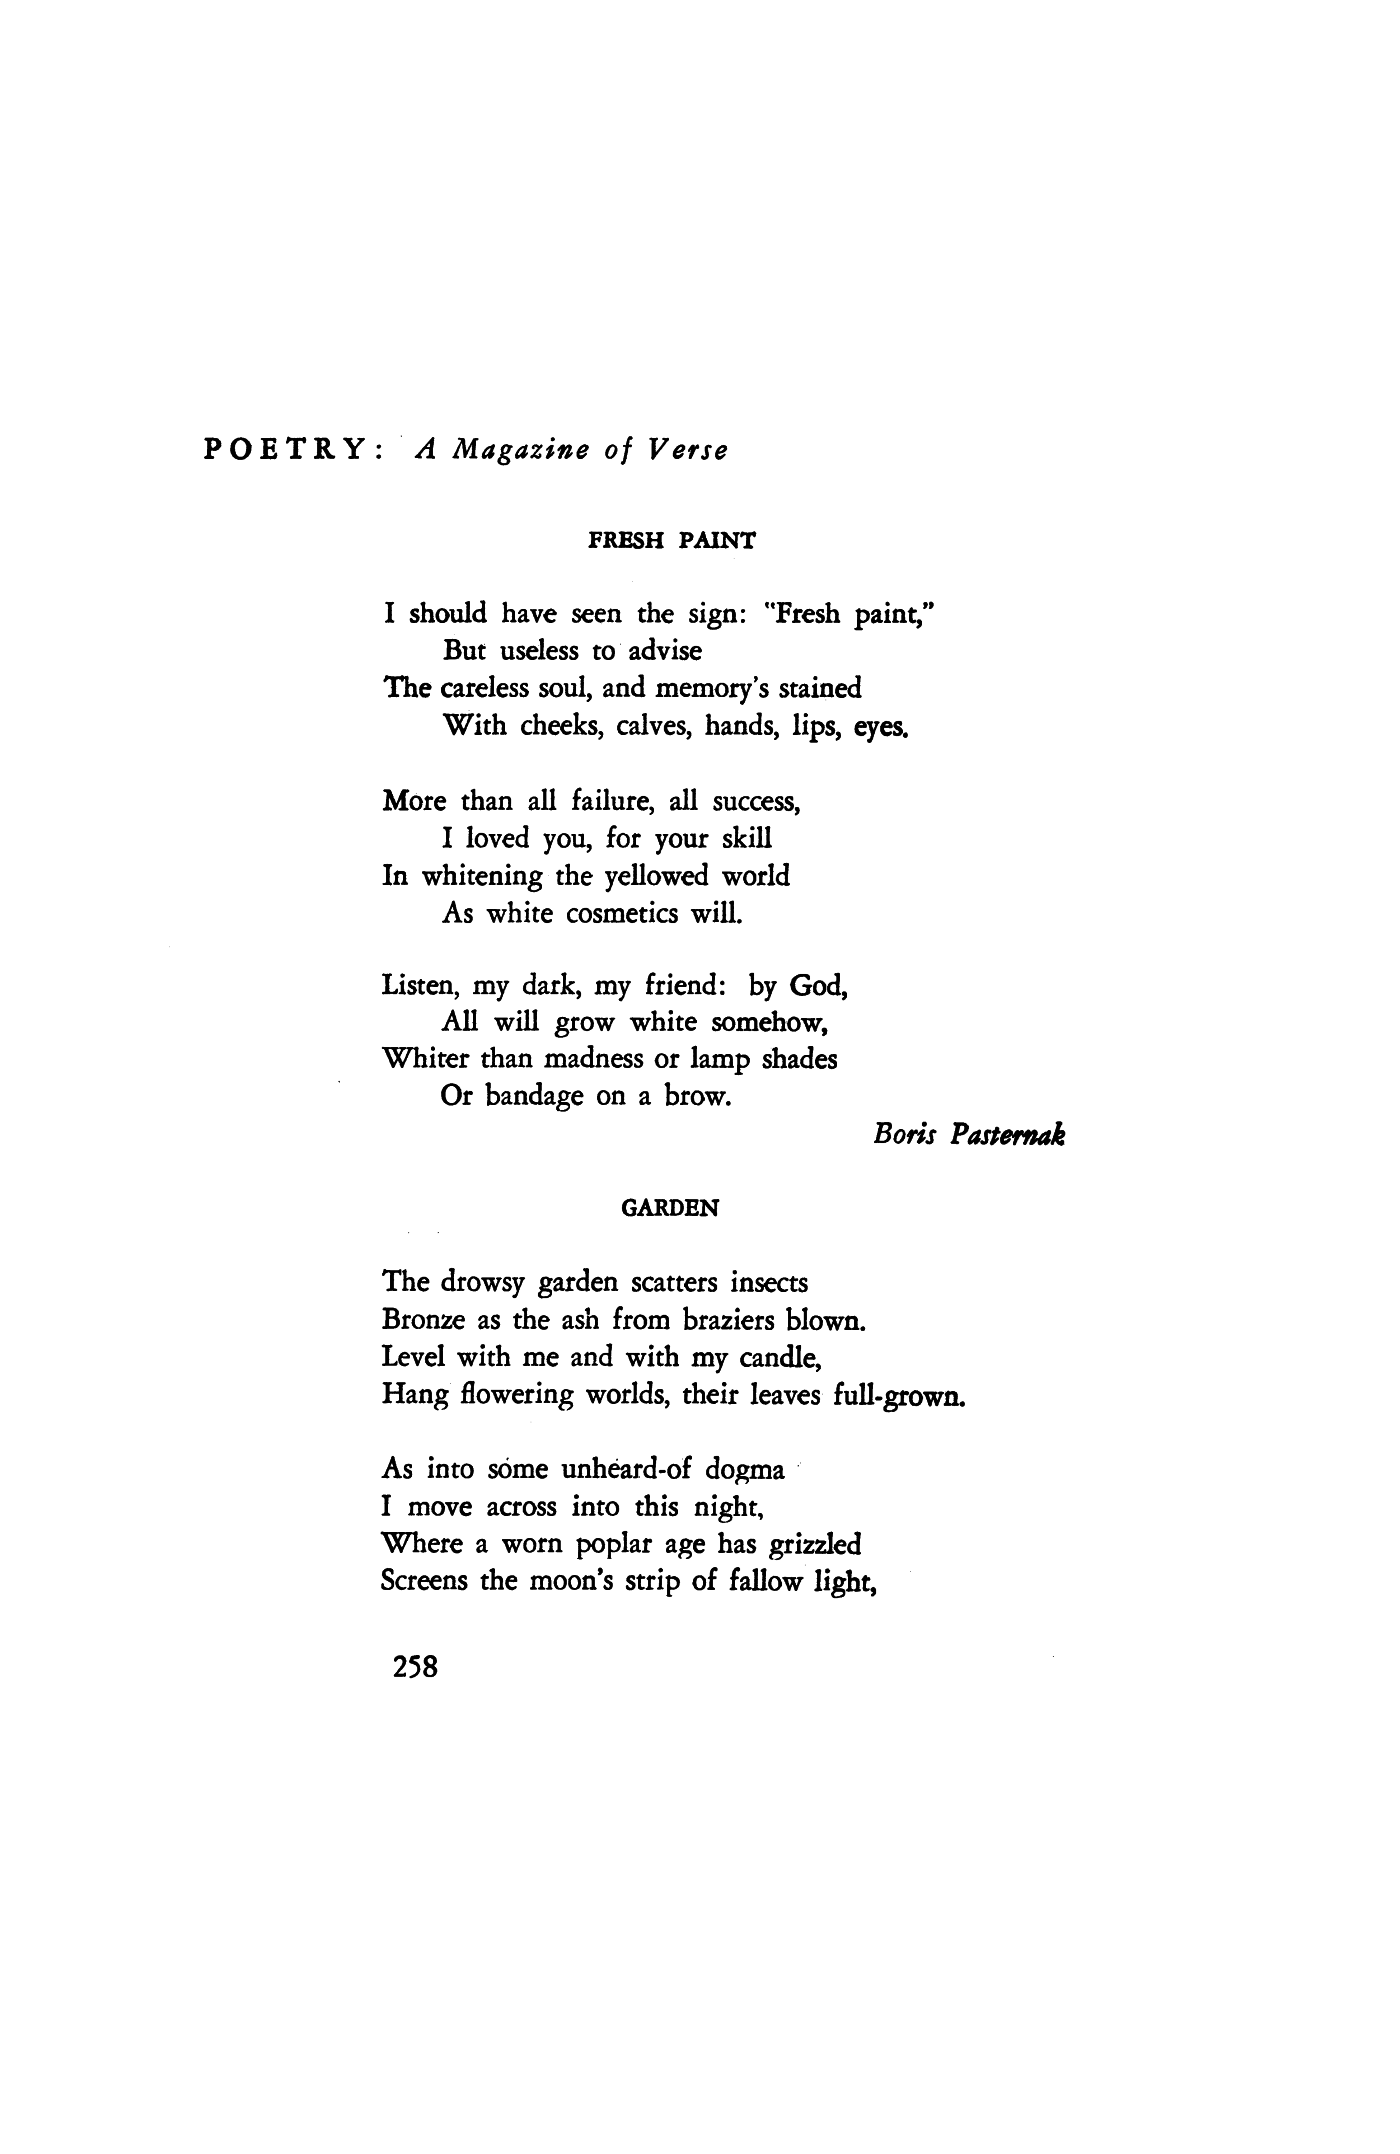 Poem by Boris Pasternak 85